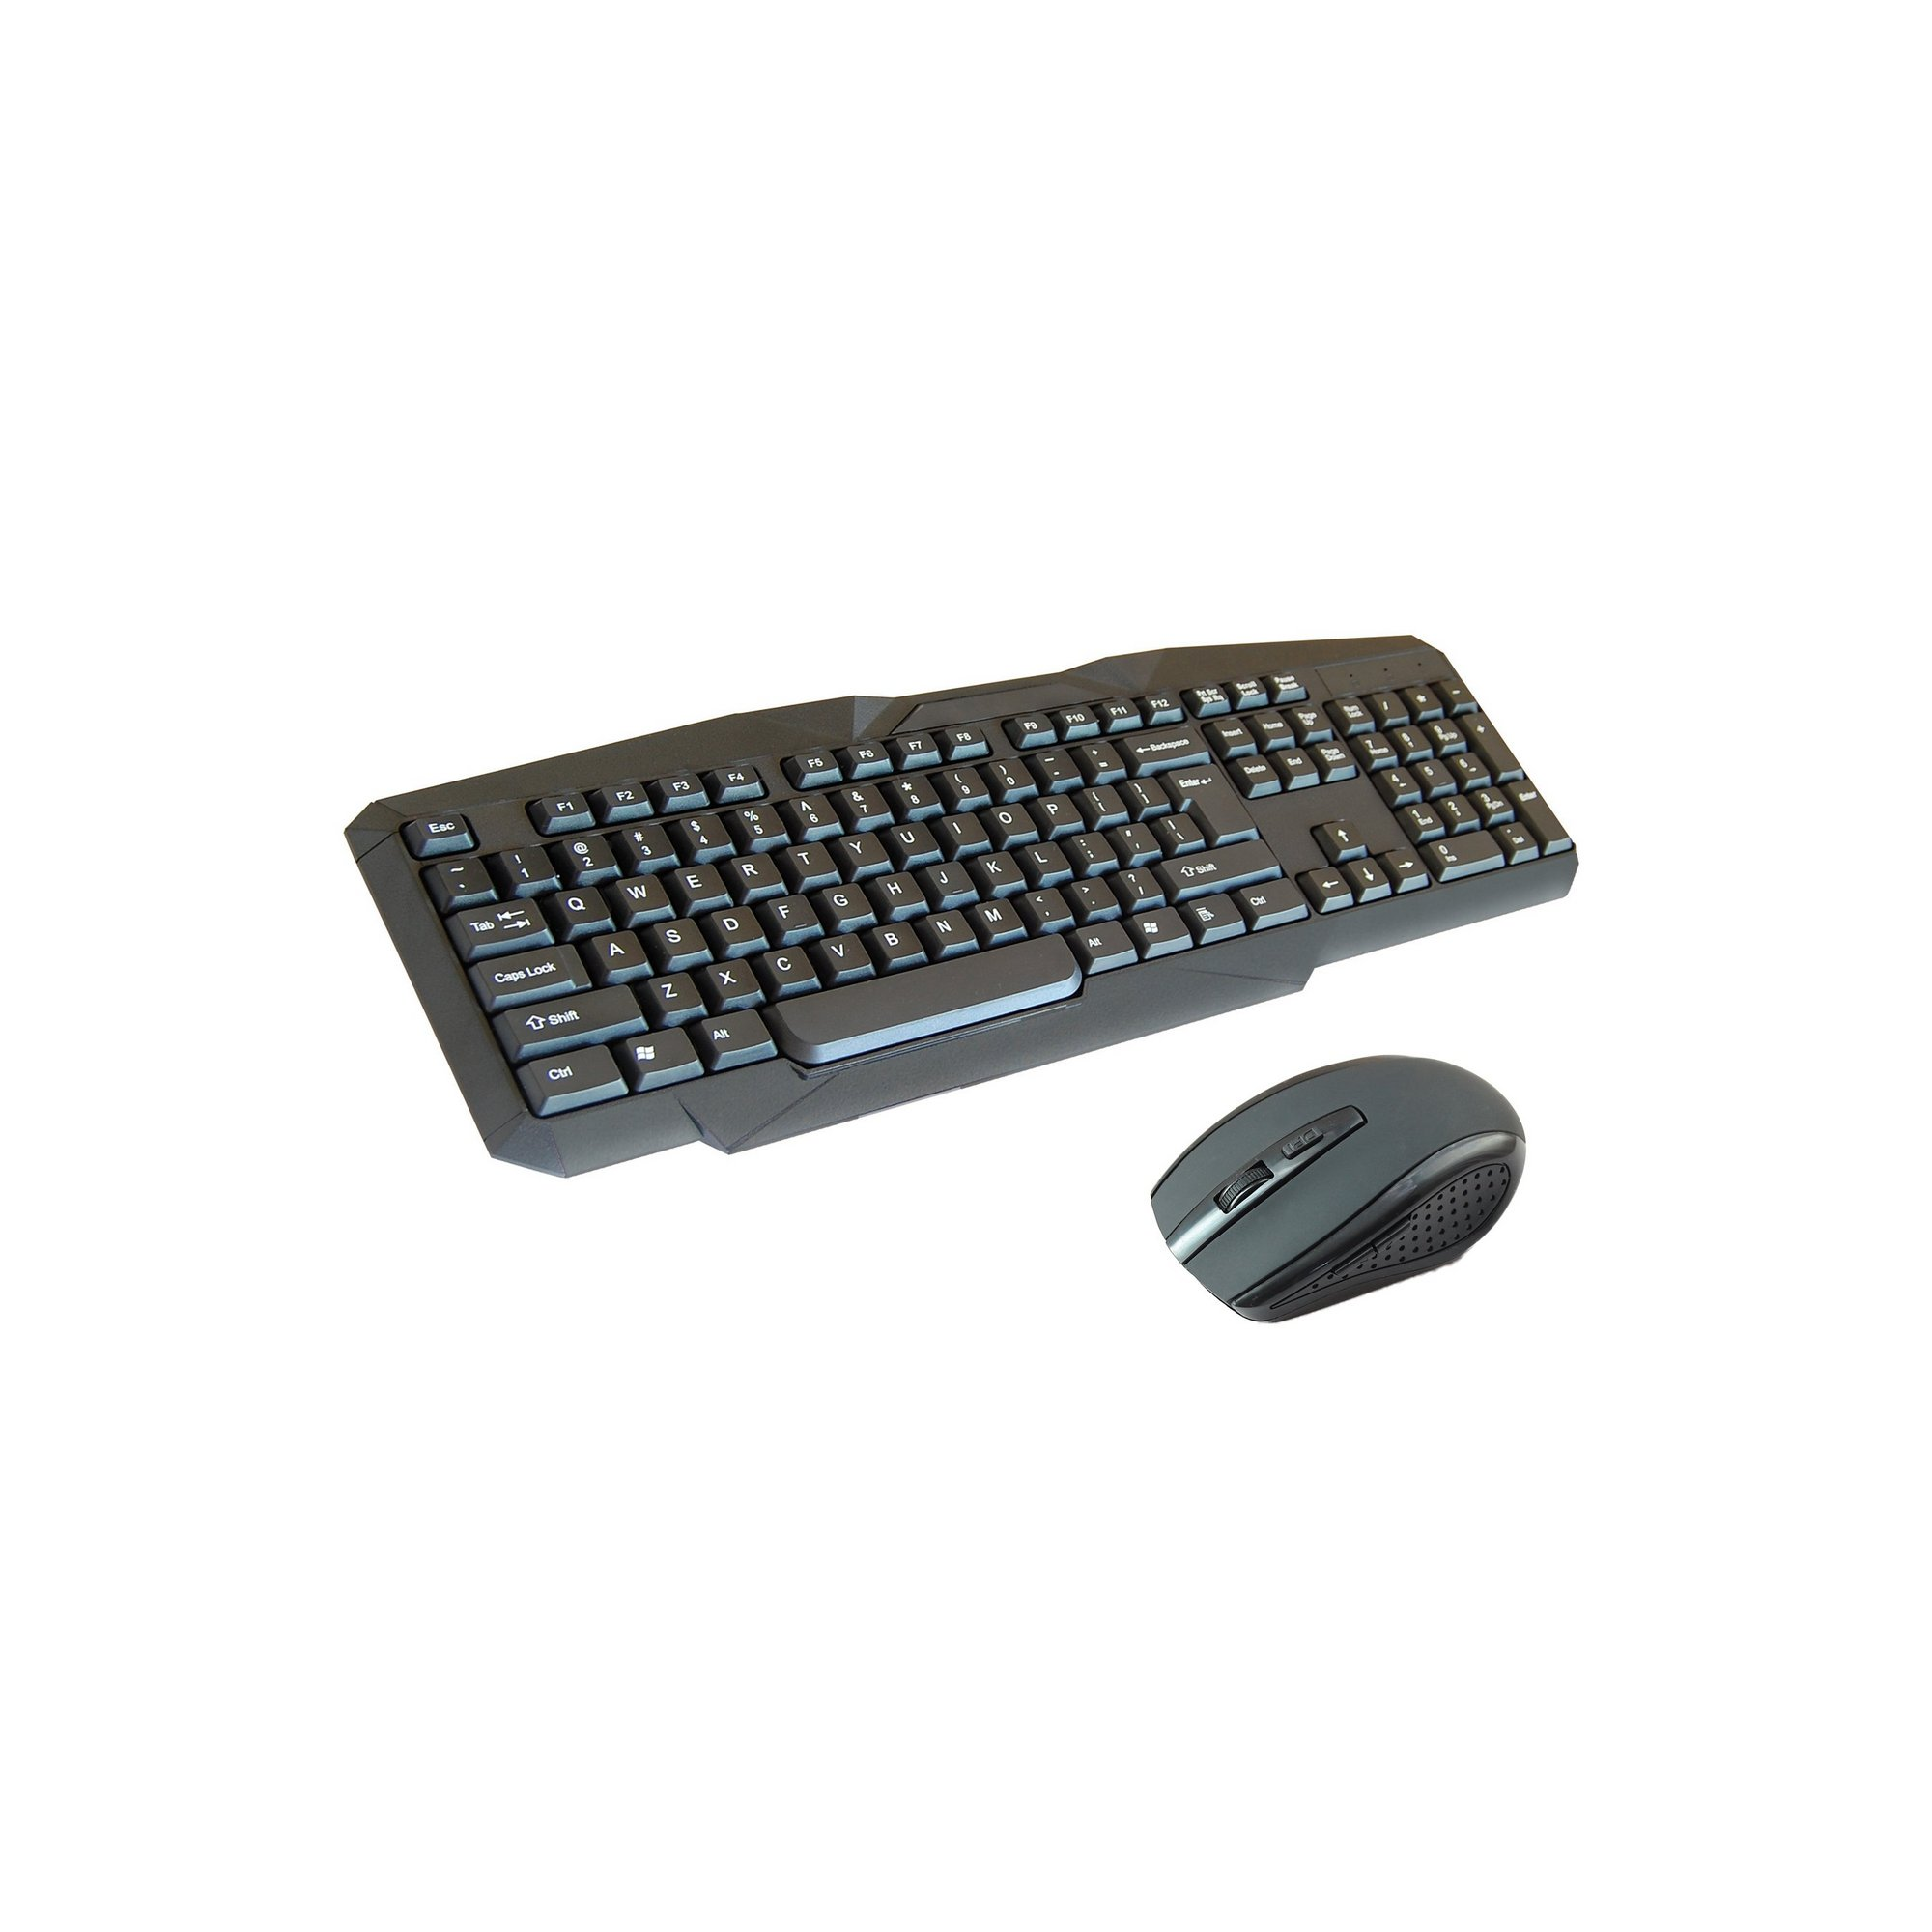 Image of Infapower Full Size Wireless Keyboard and Mouse